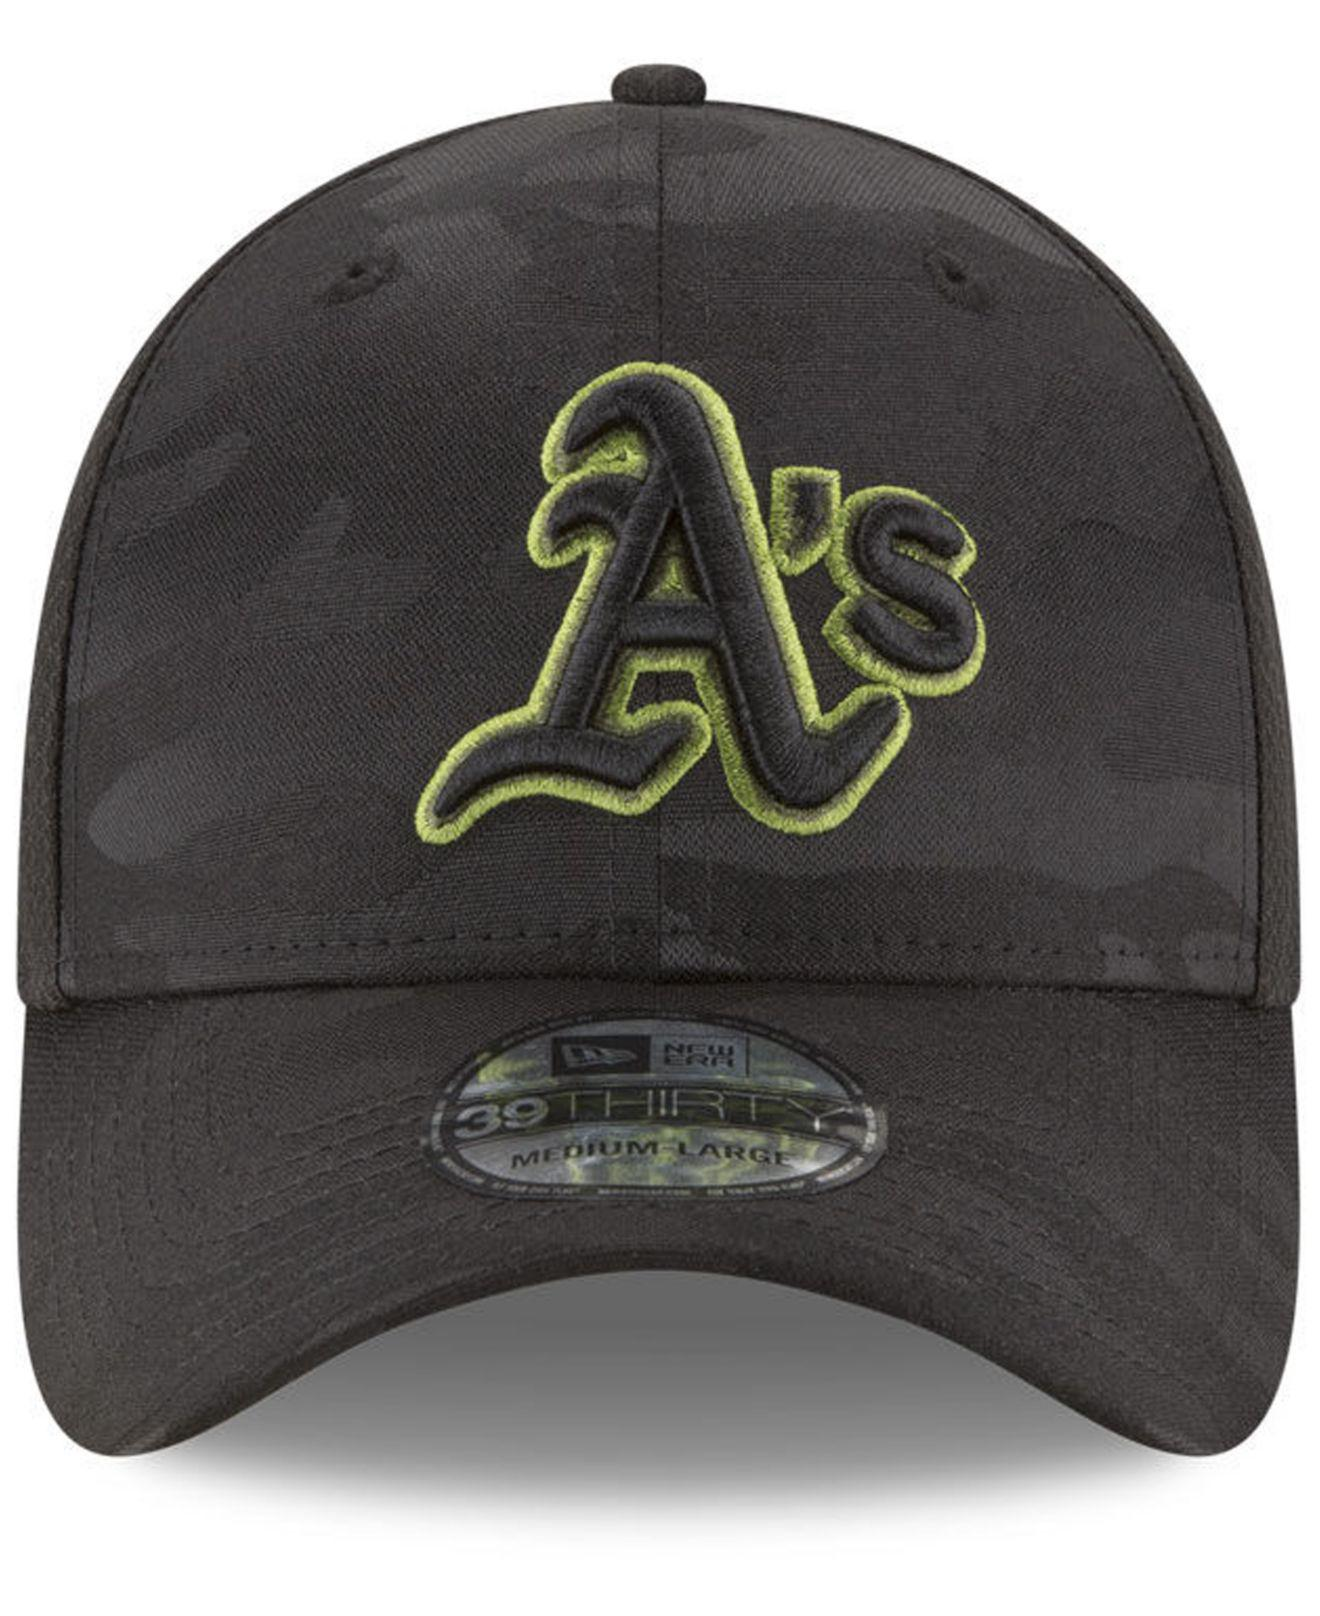 reputable site 60b0e 0cf83 ... inexpensive lyst ktz oakland athletics memorial day 39thirty cap in  black for men 1ff04 2990e